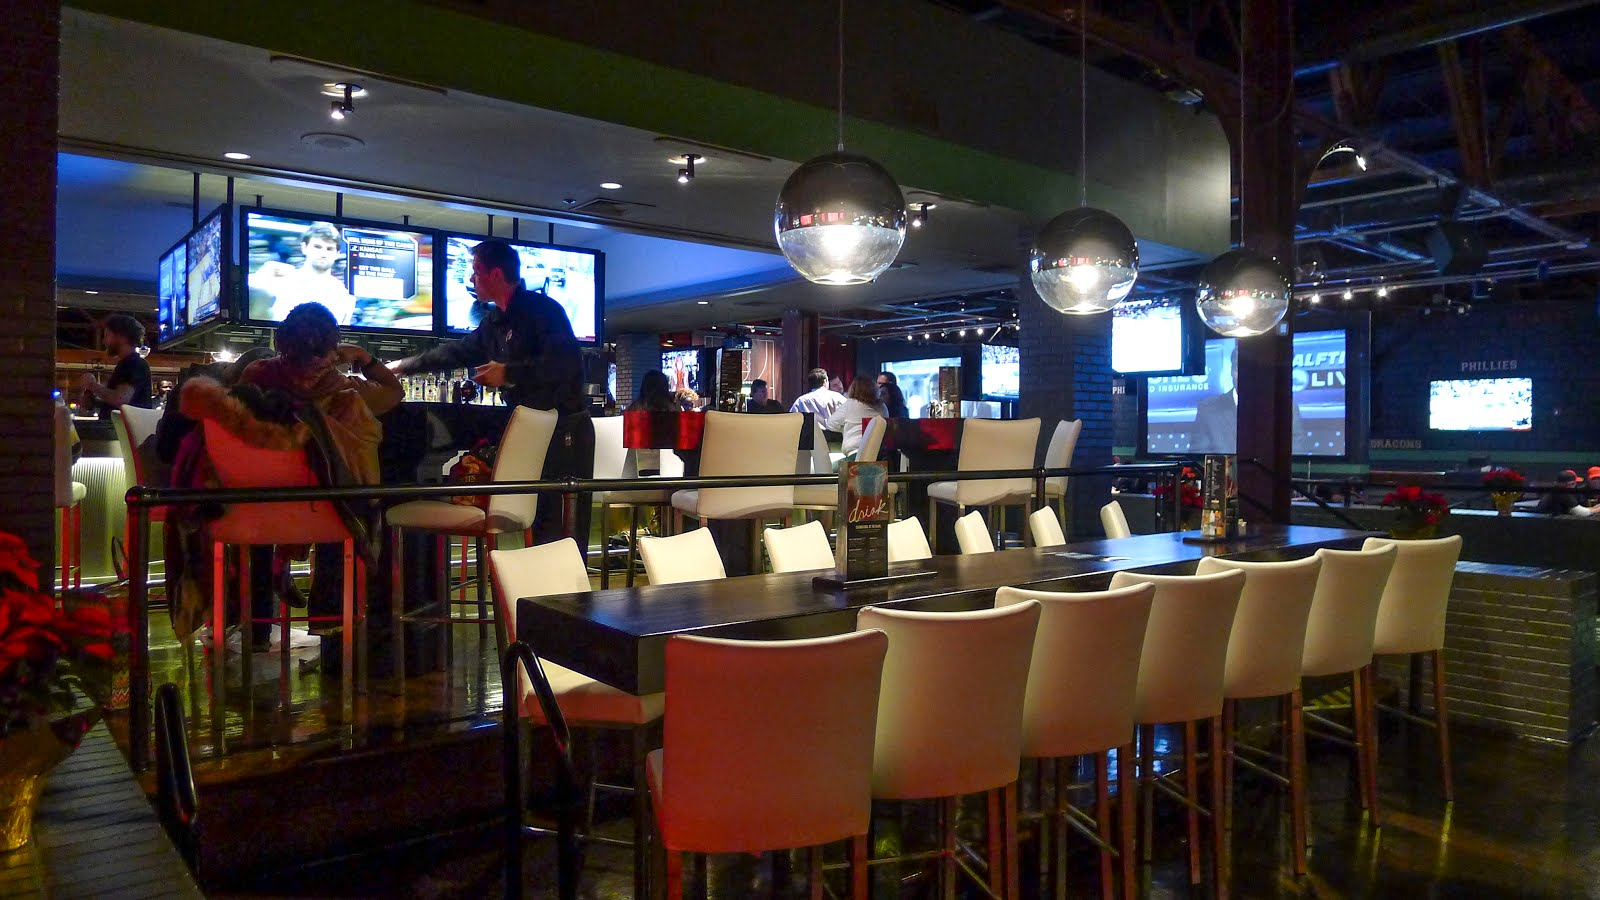 Restaurants near Dave & Buster's - Arcade, Oakville on TripAdvisor: Find traveller reviews and candid photos of dining near Dave & Buster's - Arcade in Oakville, Ontario.